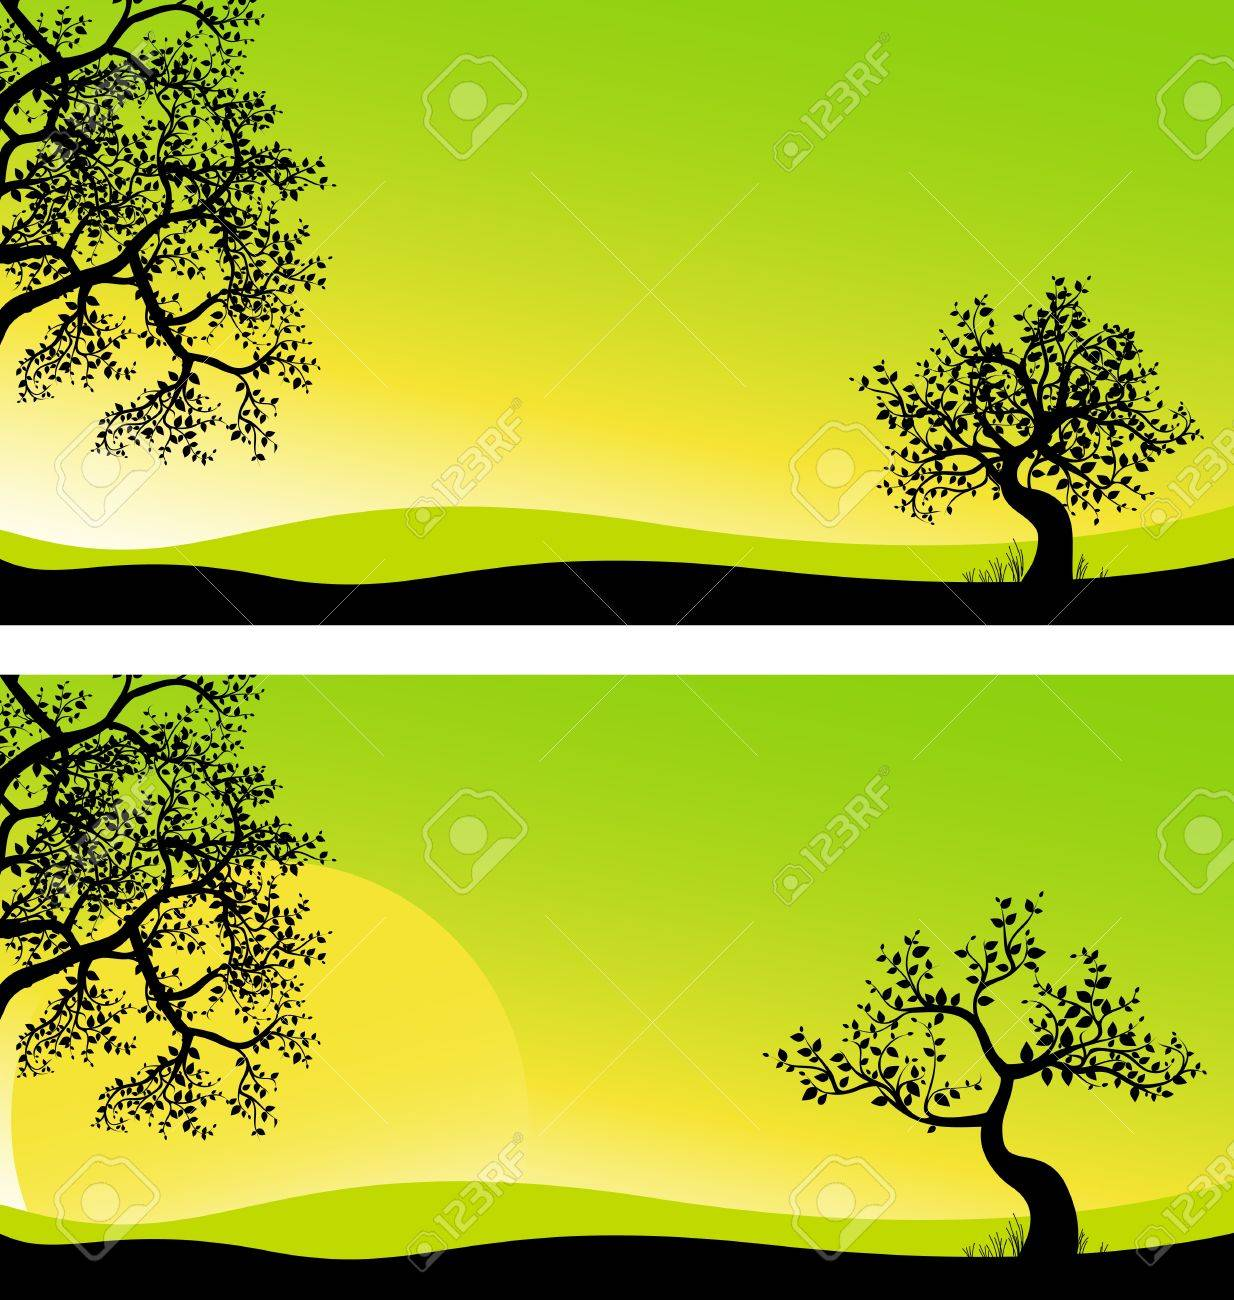 Landscape panorama, vector image sunrise, background for design Stock Vector - 14464679